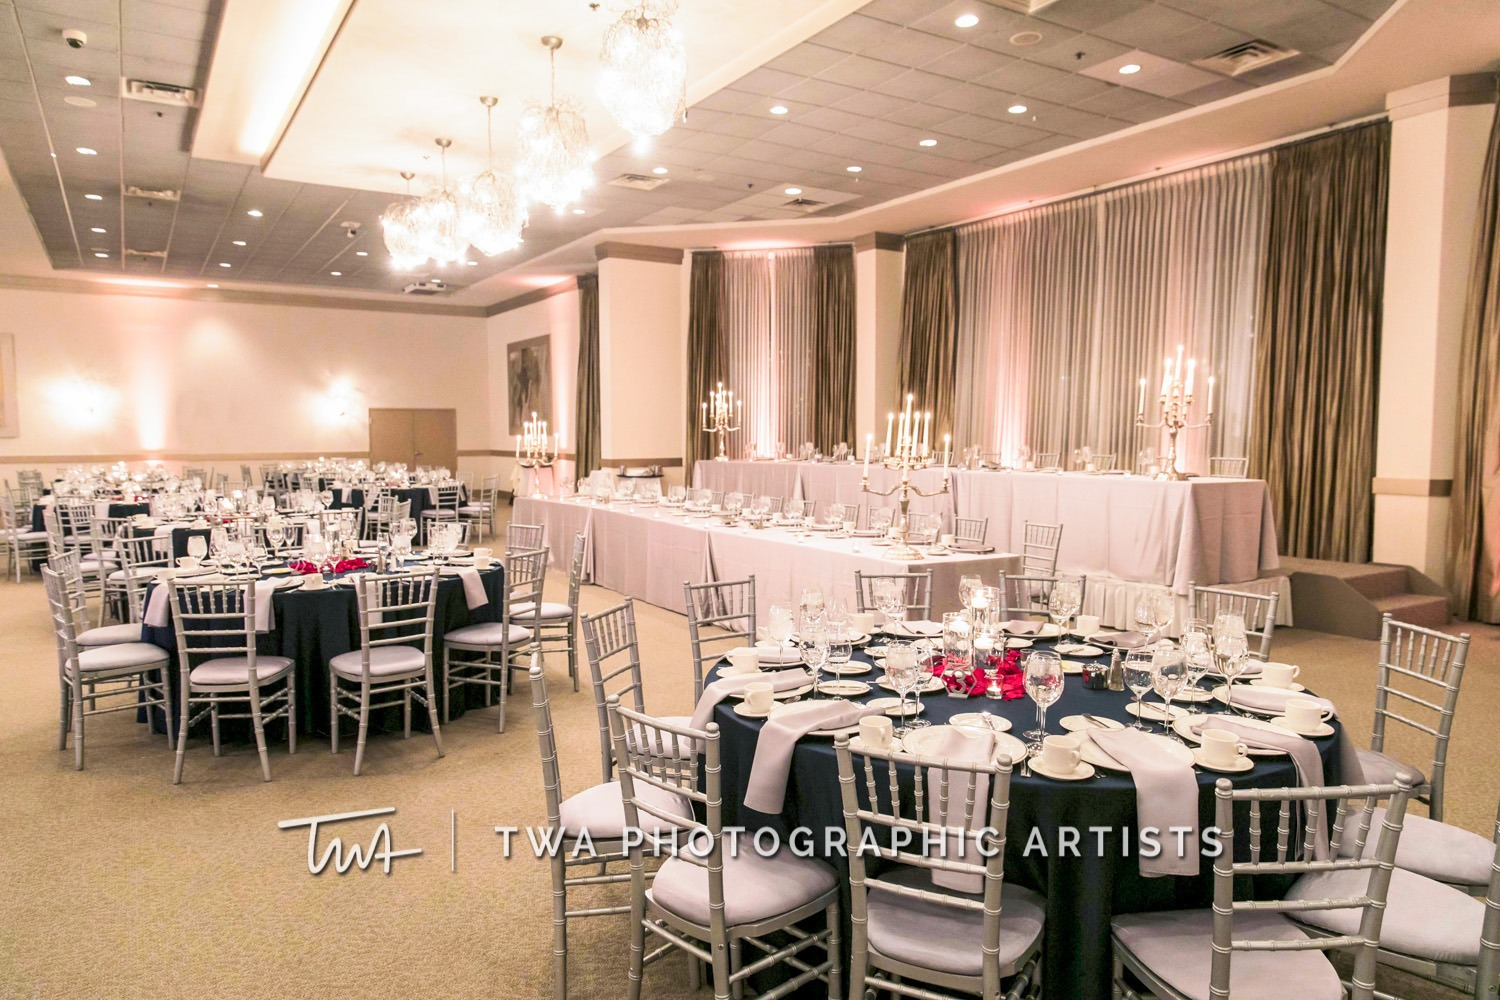 Chicago-Wedding-Photographer-TWA-Photographic-Artists-Belvedere-Banquets_Connolly_Sturlis_NO-DR-1443-Edit